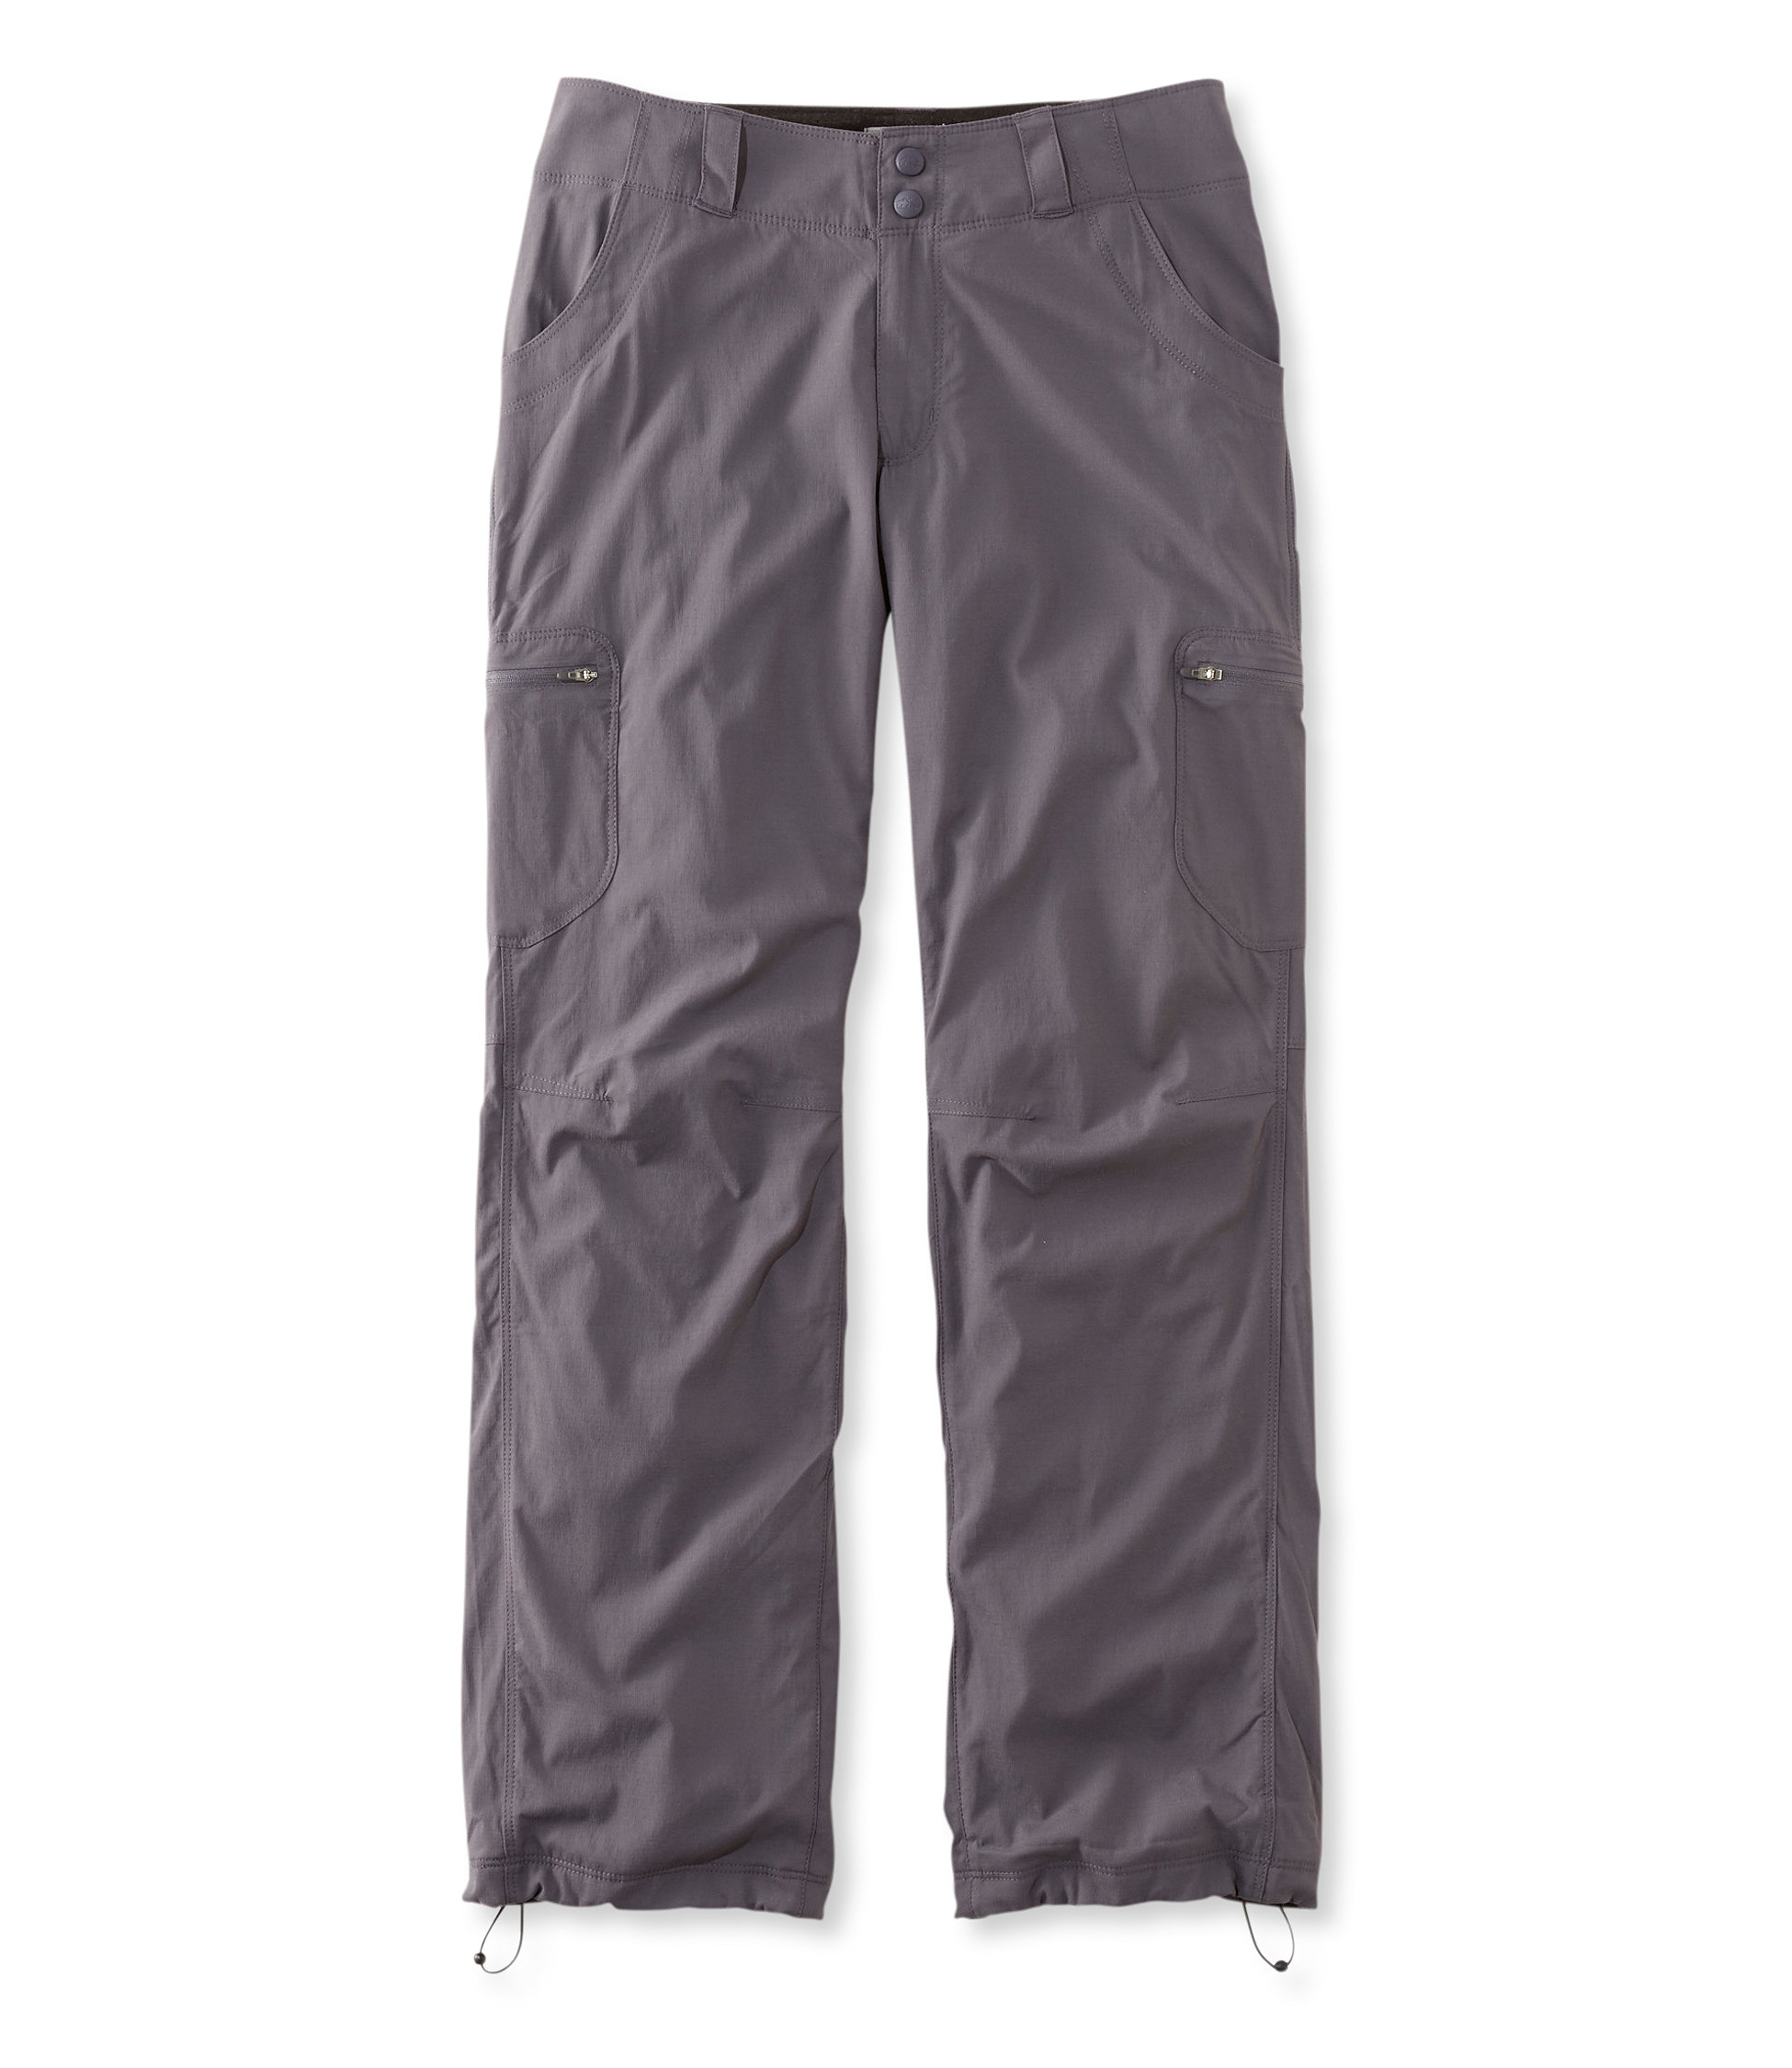 L.L.Bean Vista Trekking Pants, Lined